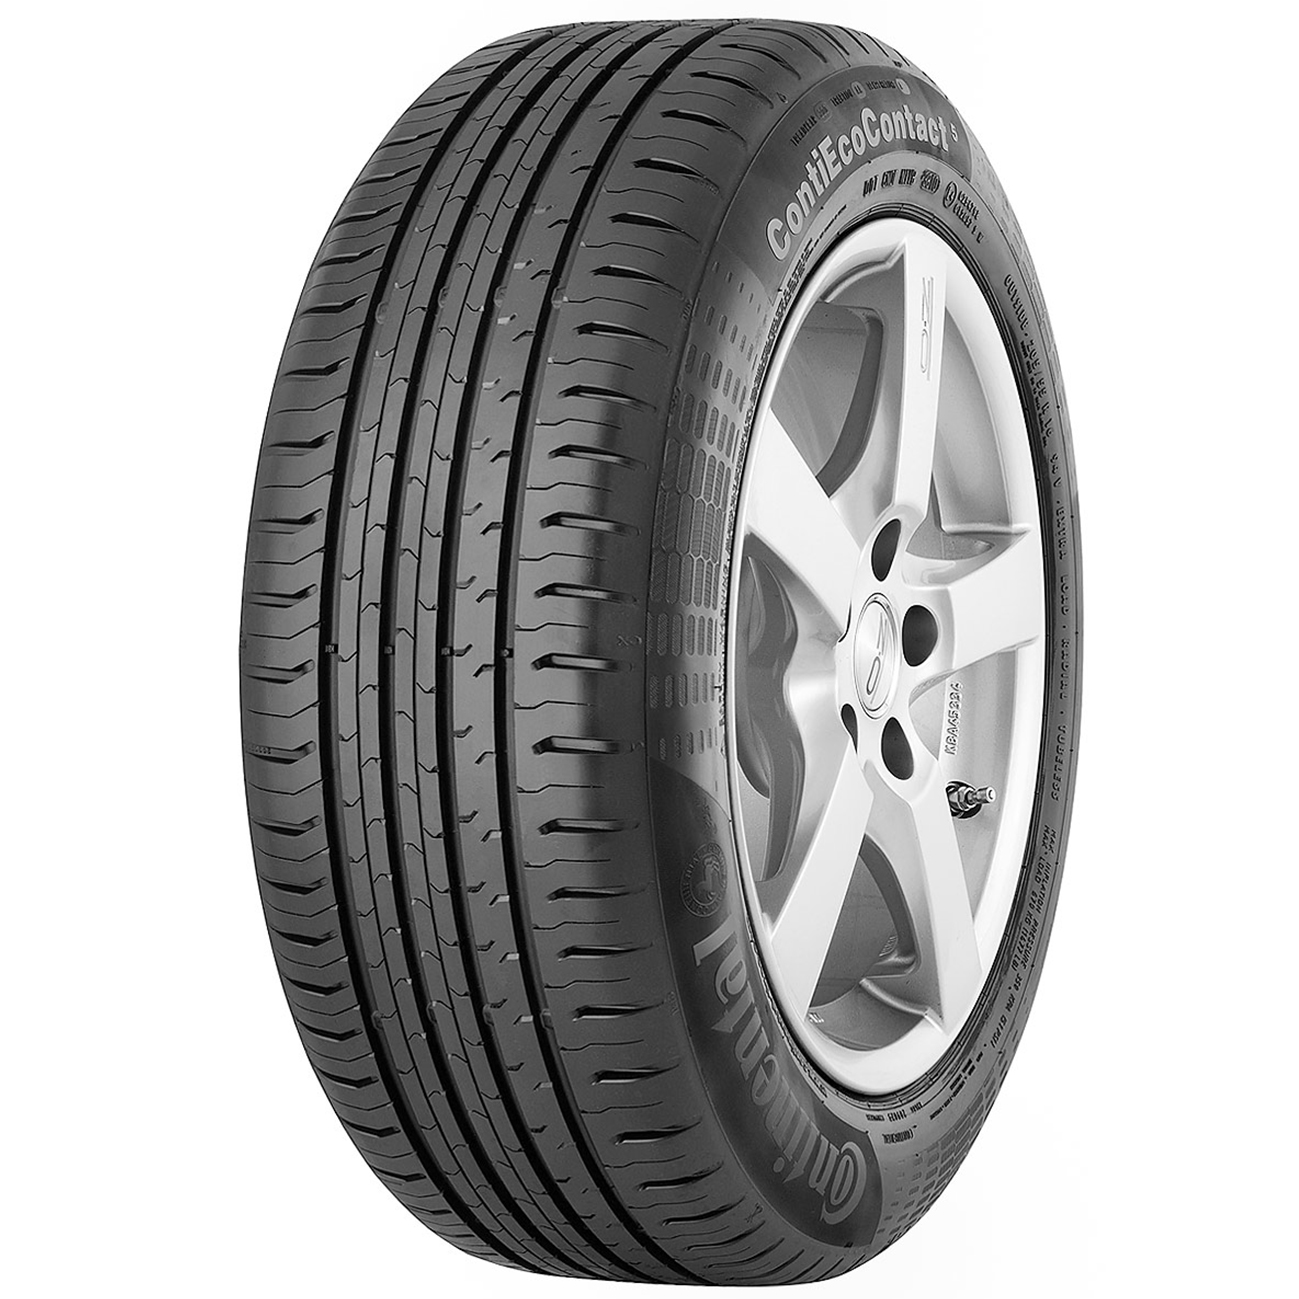 Continental CONTI ECO CONTACT 3 165/65 R 13 Tubeless 77 T Car Tyre